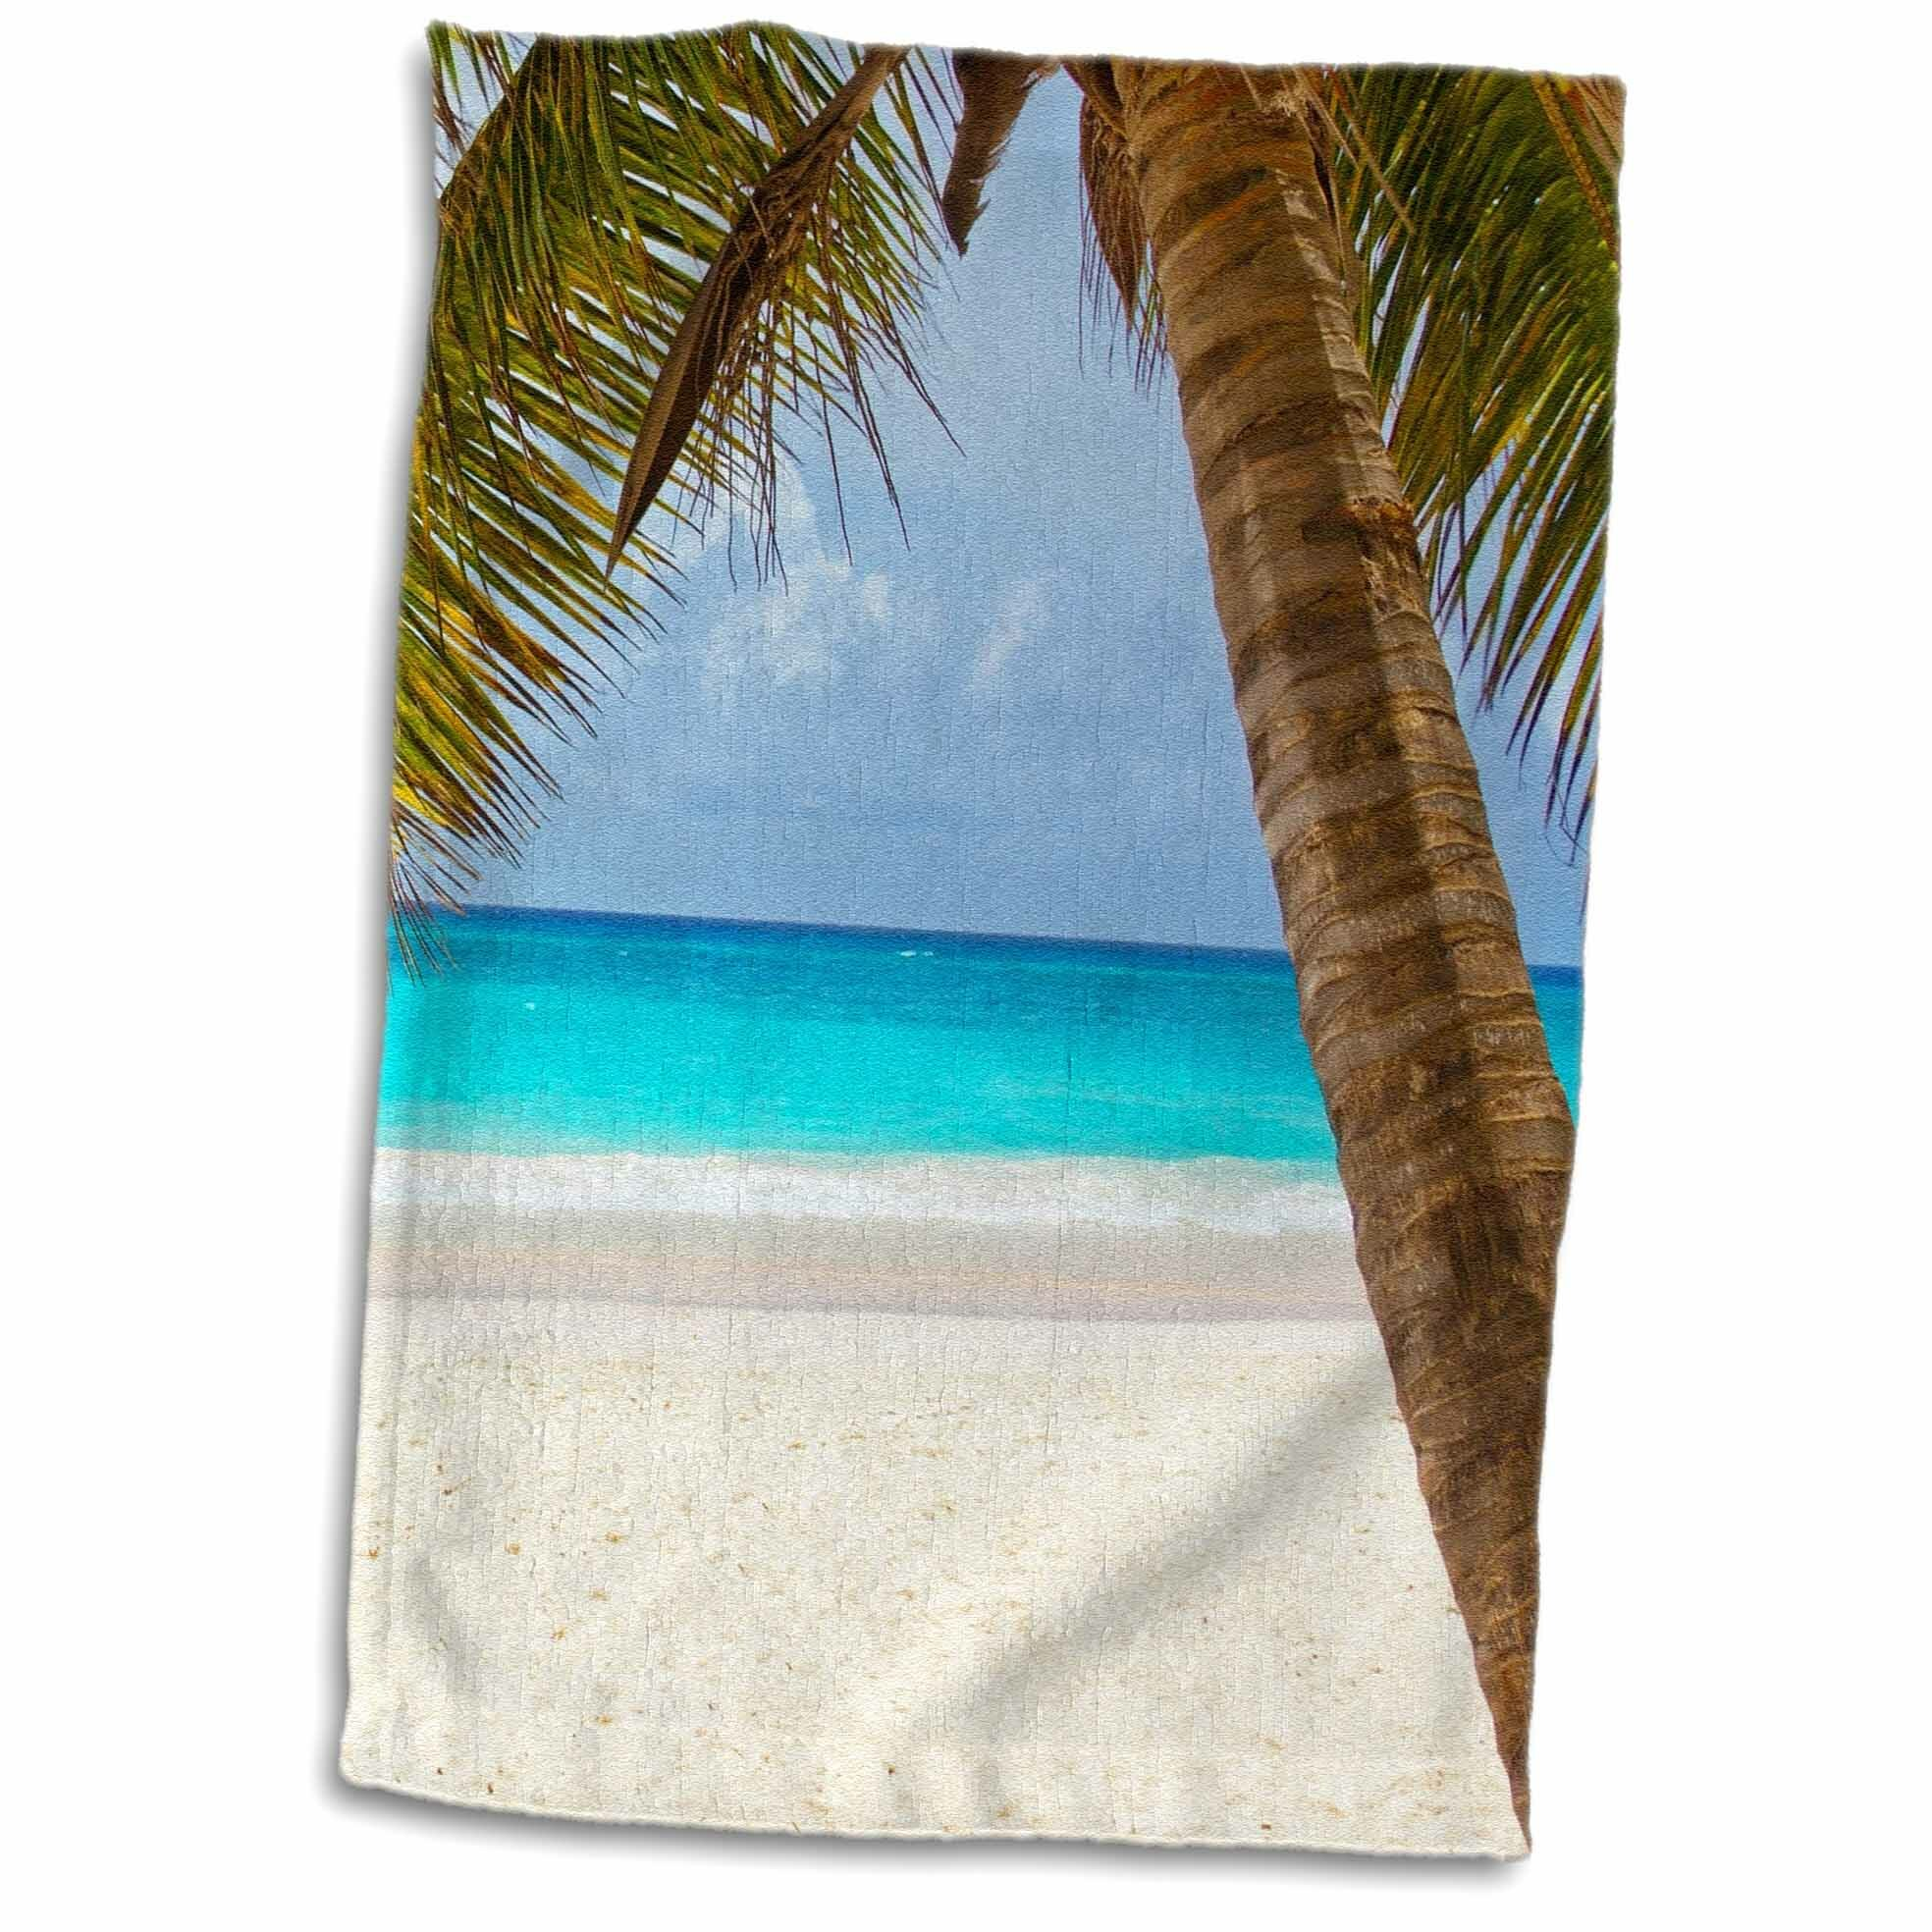 Hinson Holiday and Travel Ocean Sea Life Palm Tree Nature Tea Towel